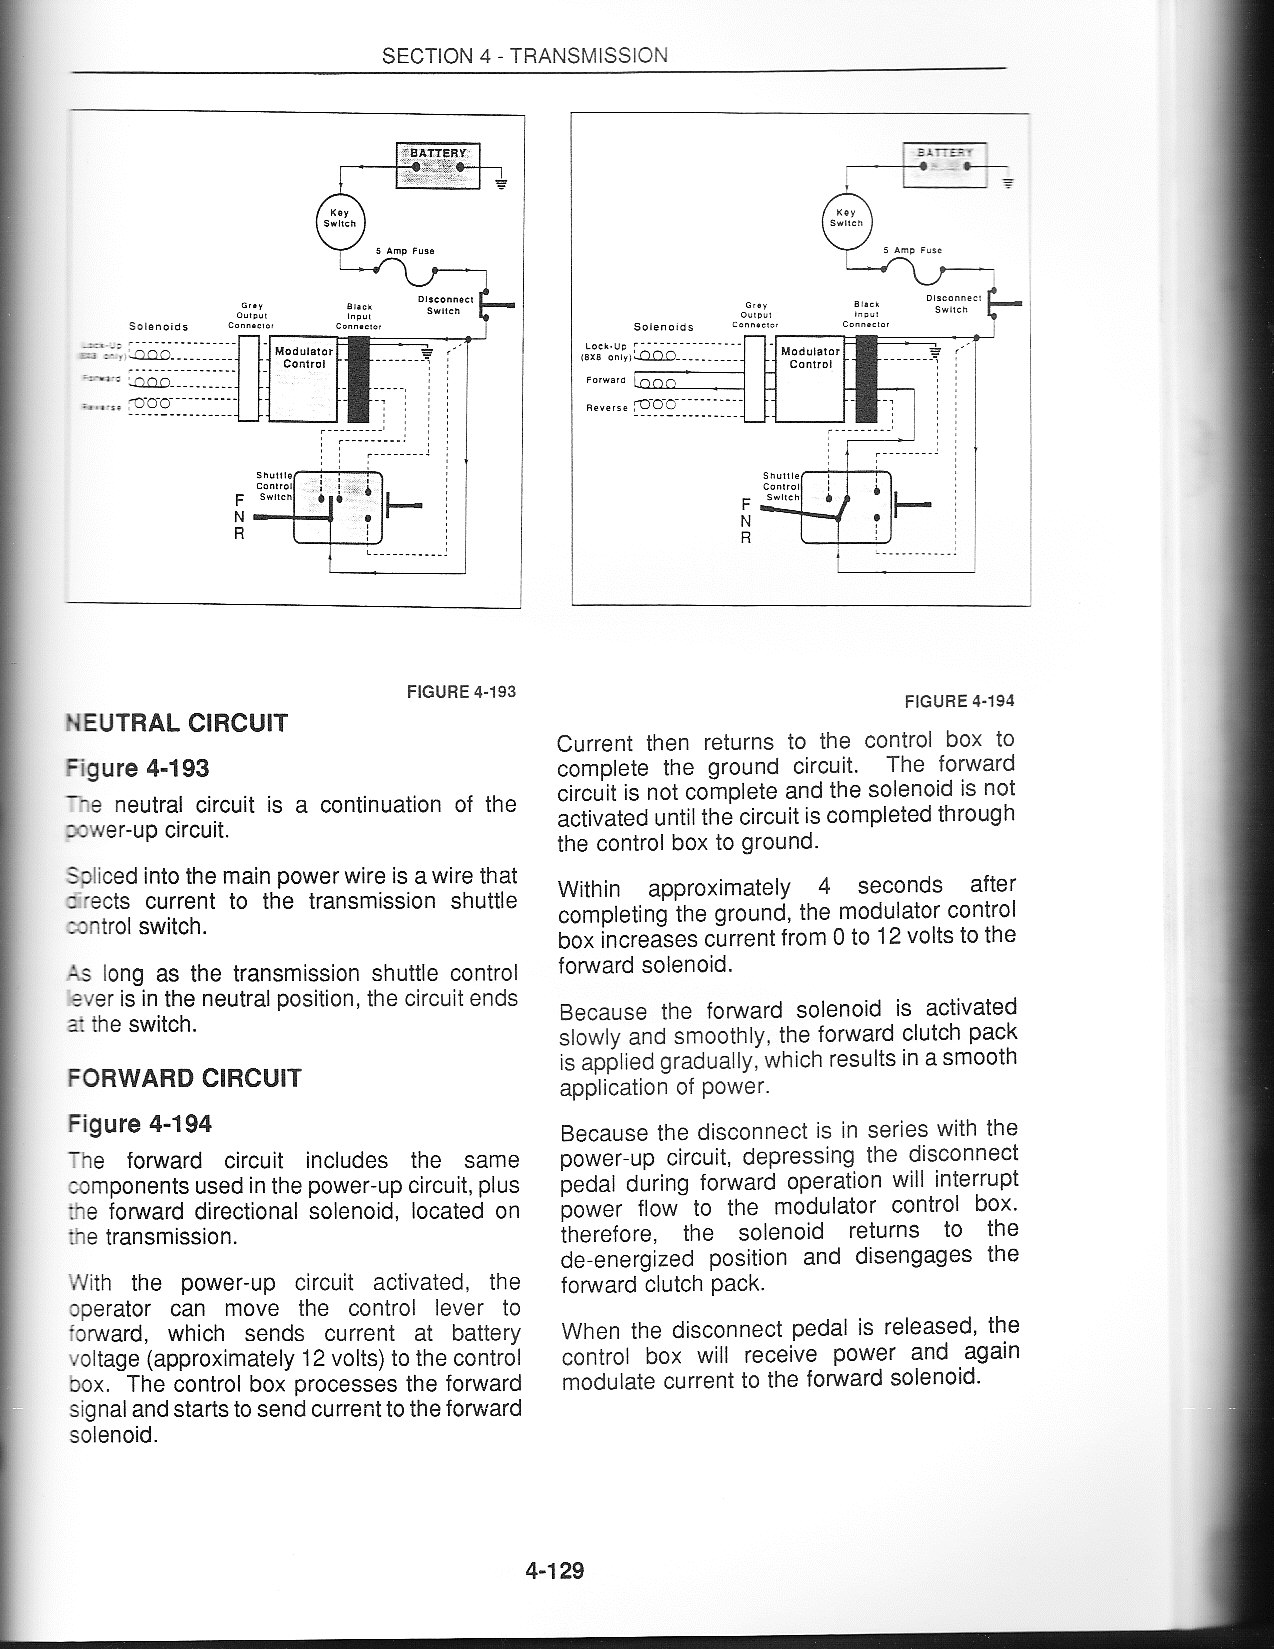 I Have A Ford 445c Loader Tractor With 8 X8 Lectronic Shuttle Shift 1210 Wiring Diagram Graphic